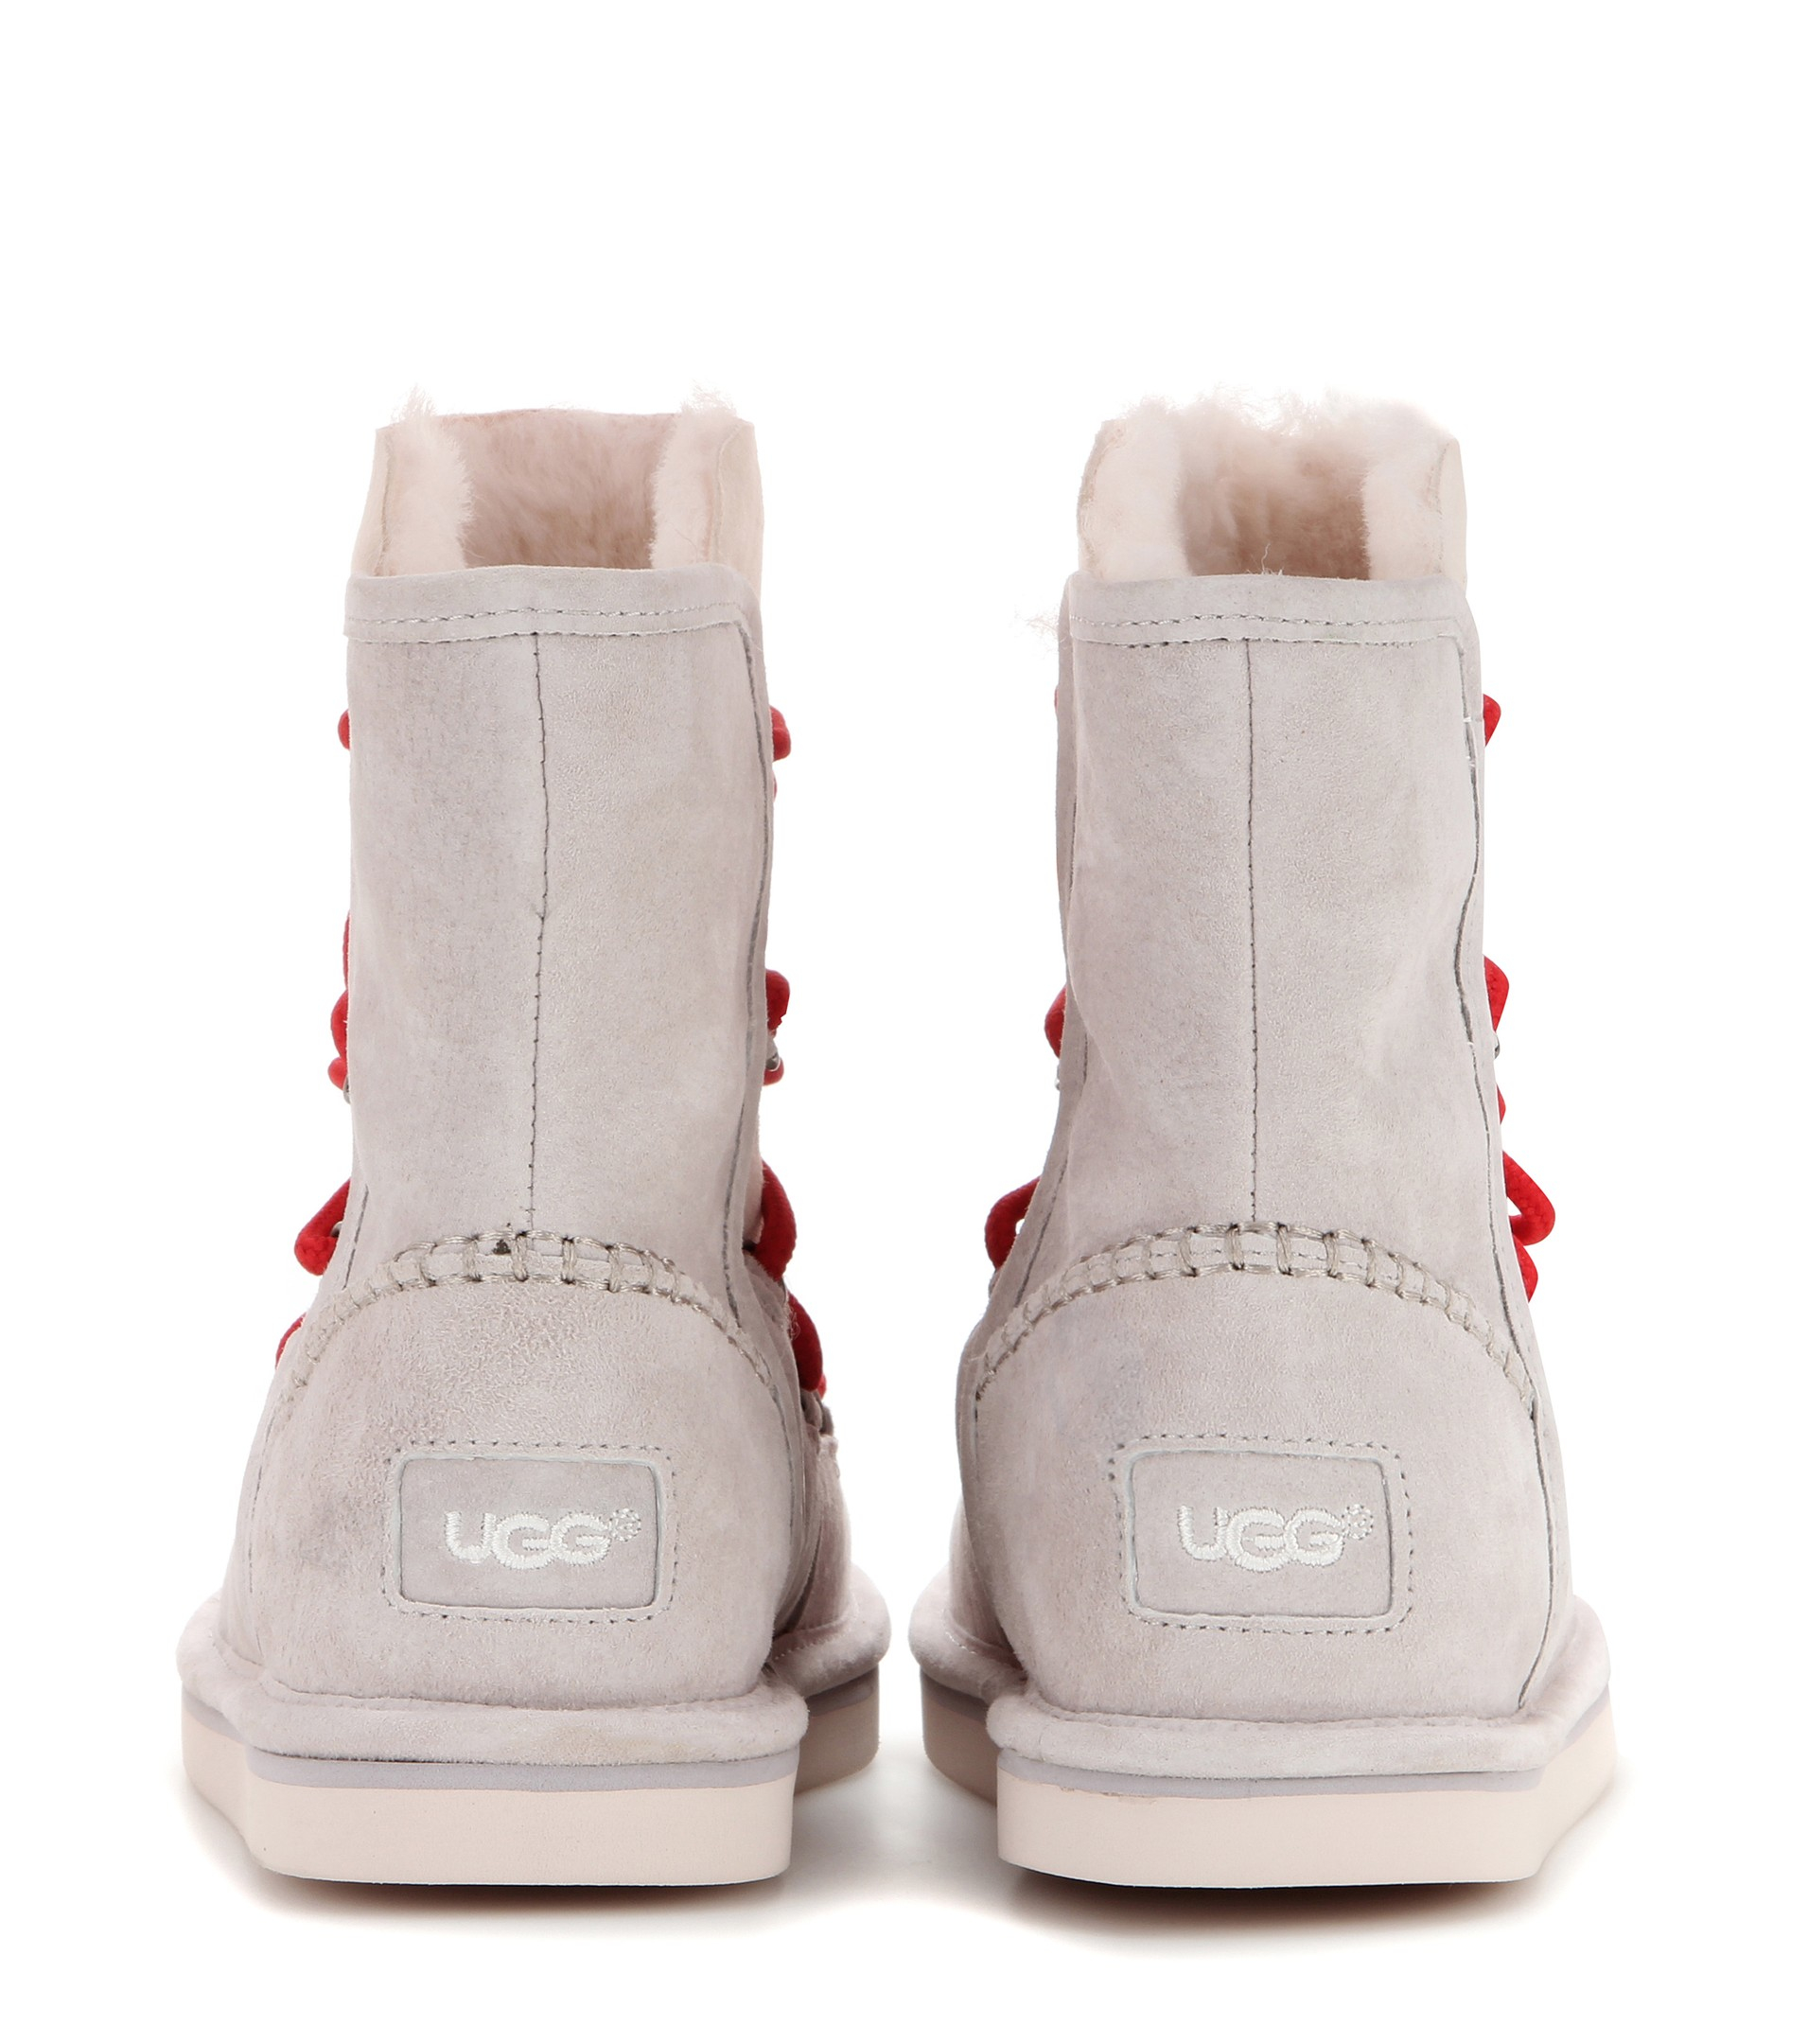 UGG Lodge Shearling-Lined Ankle Boots in Grey